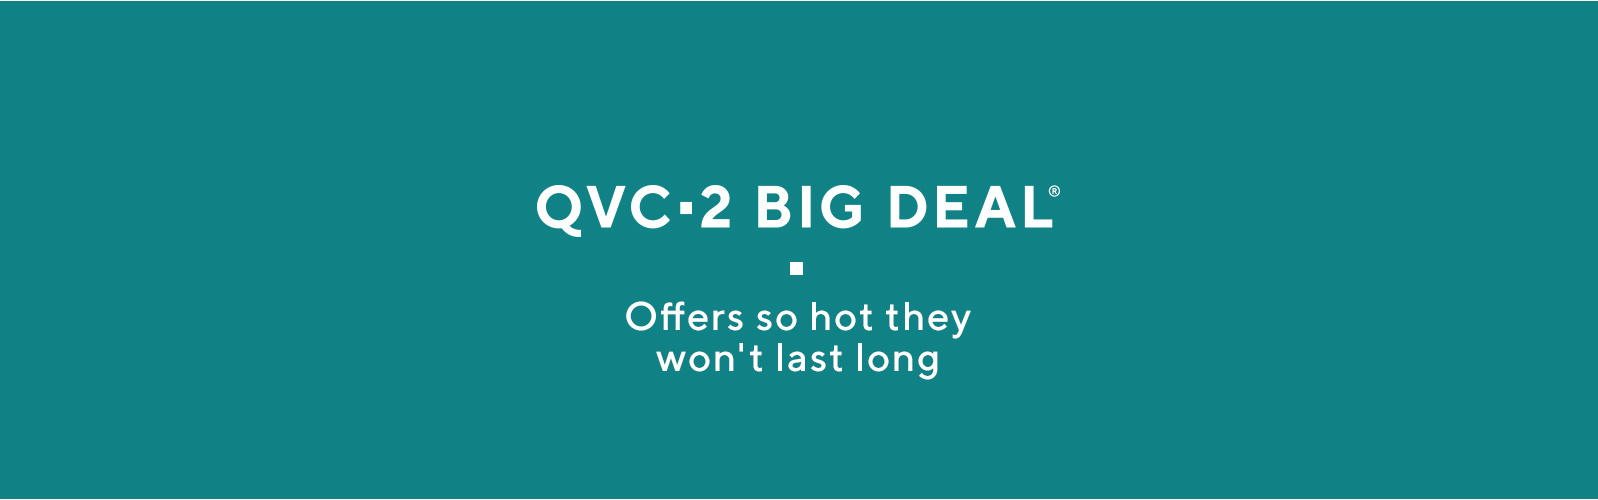 QVC2 Big Deal®   Offers so hot they won't last long